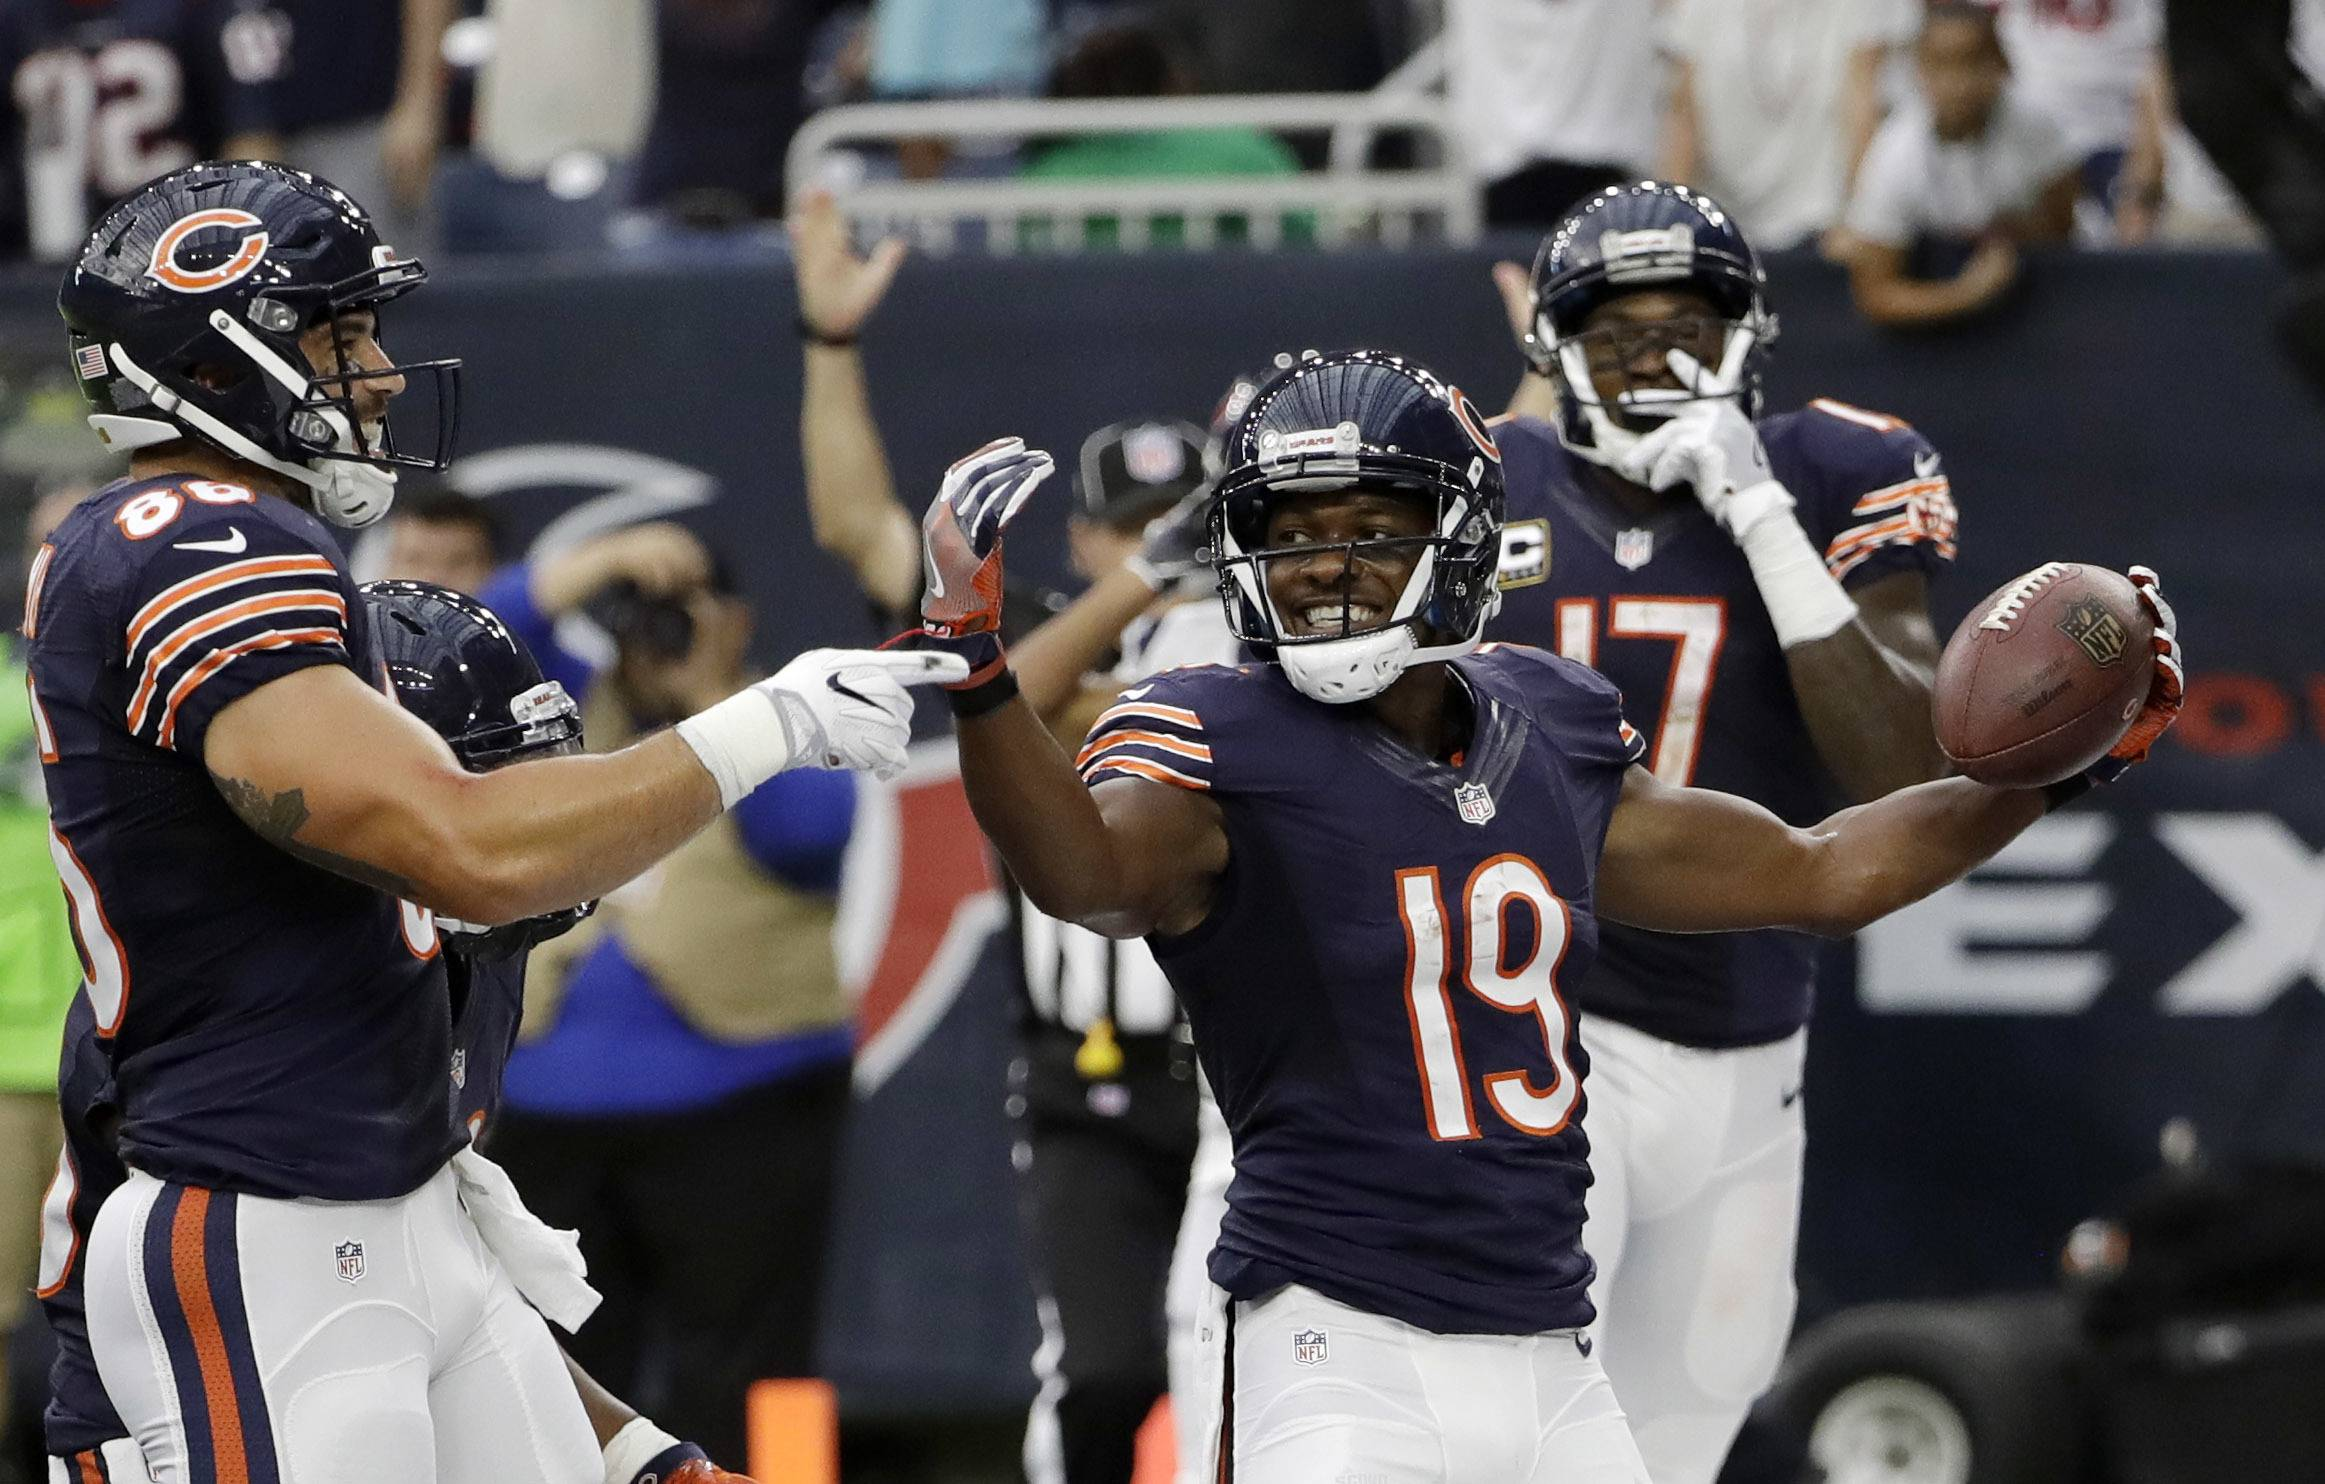 Chicago Bears wide receiver Eddie Royal has seen success so far this season, both as a receiver and as a punt returner.